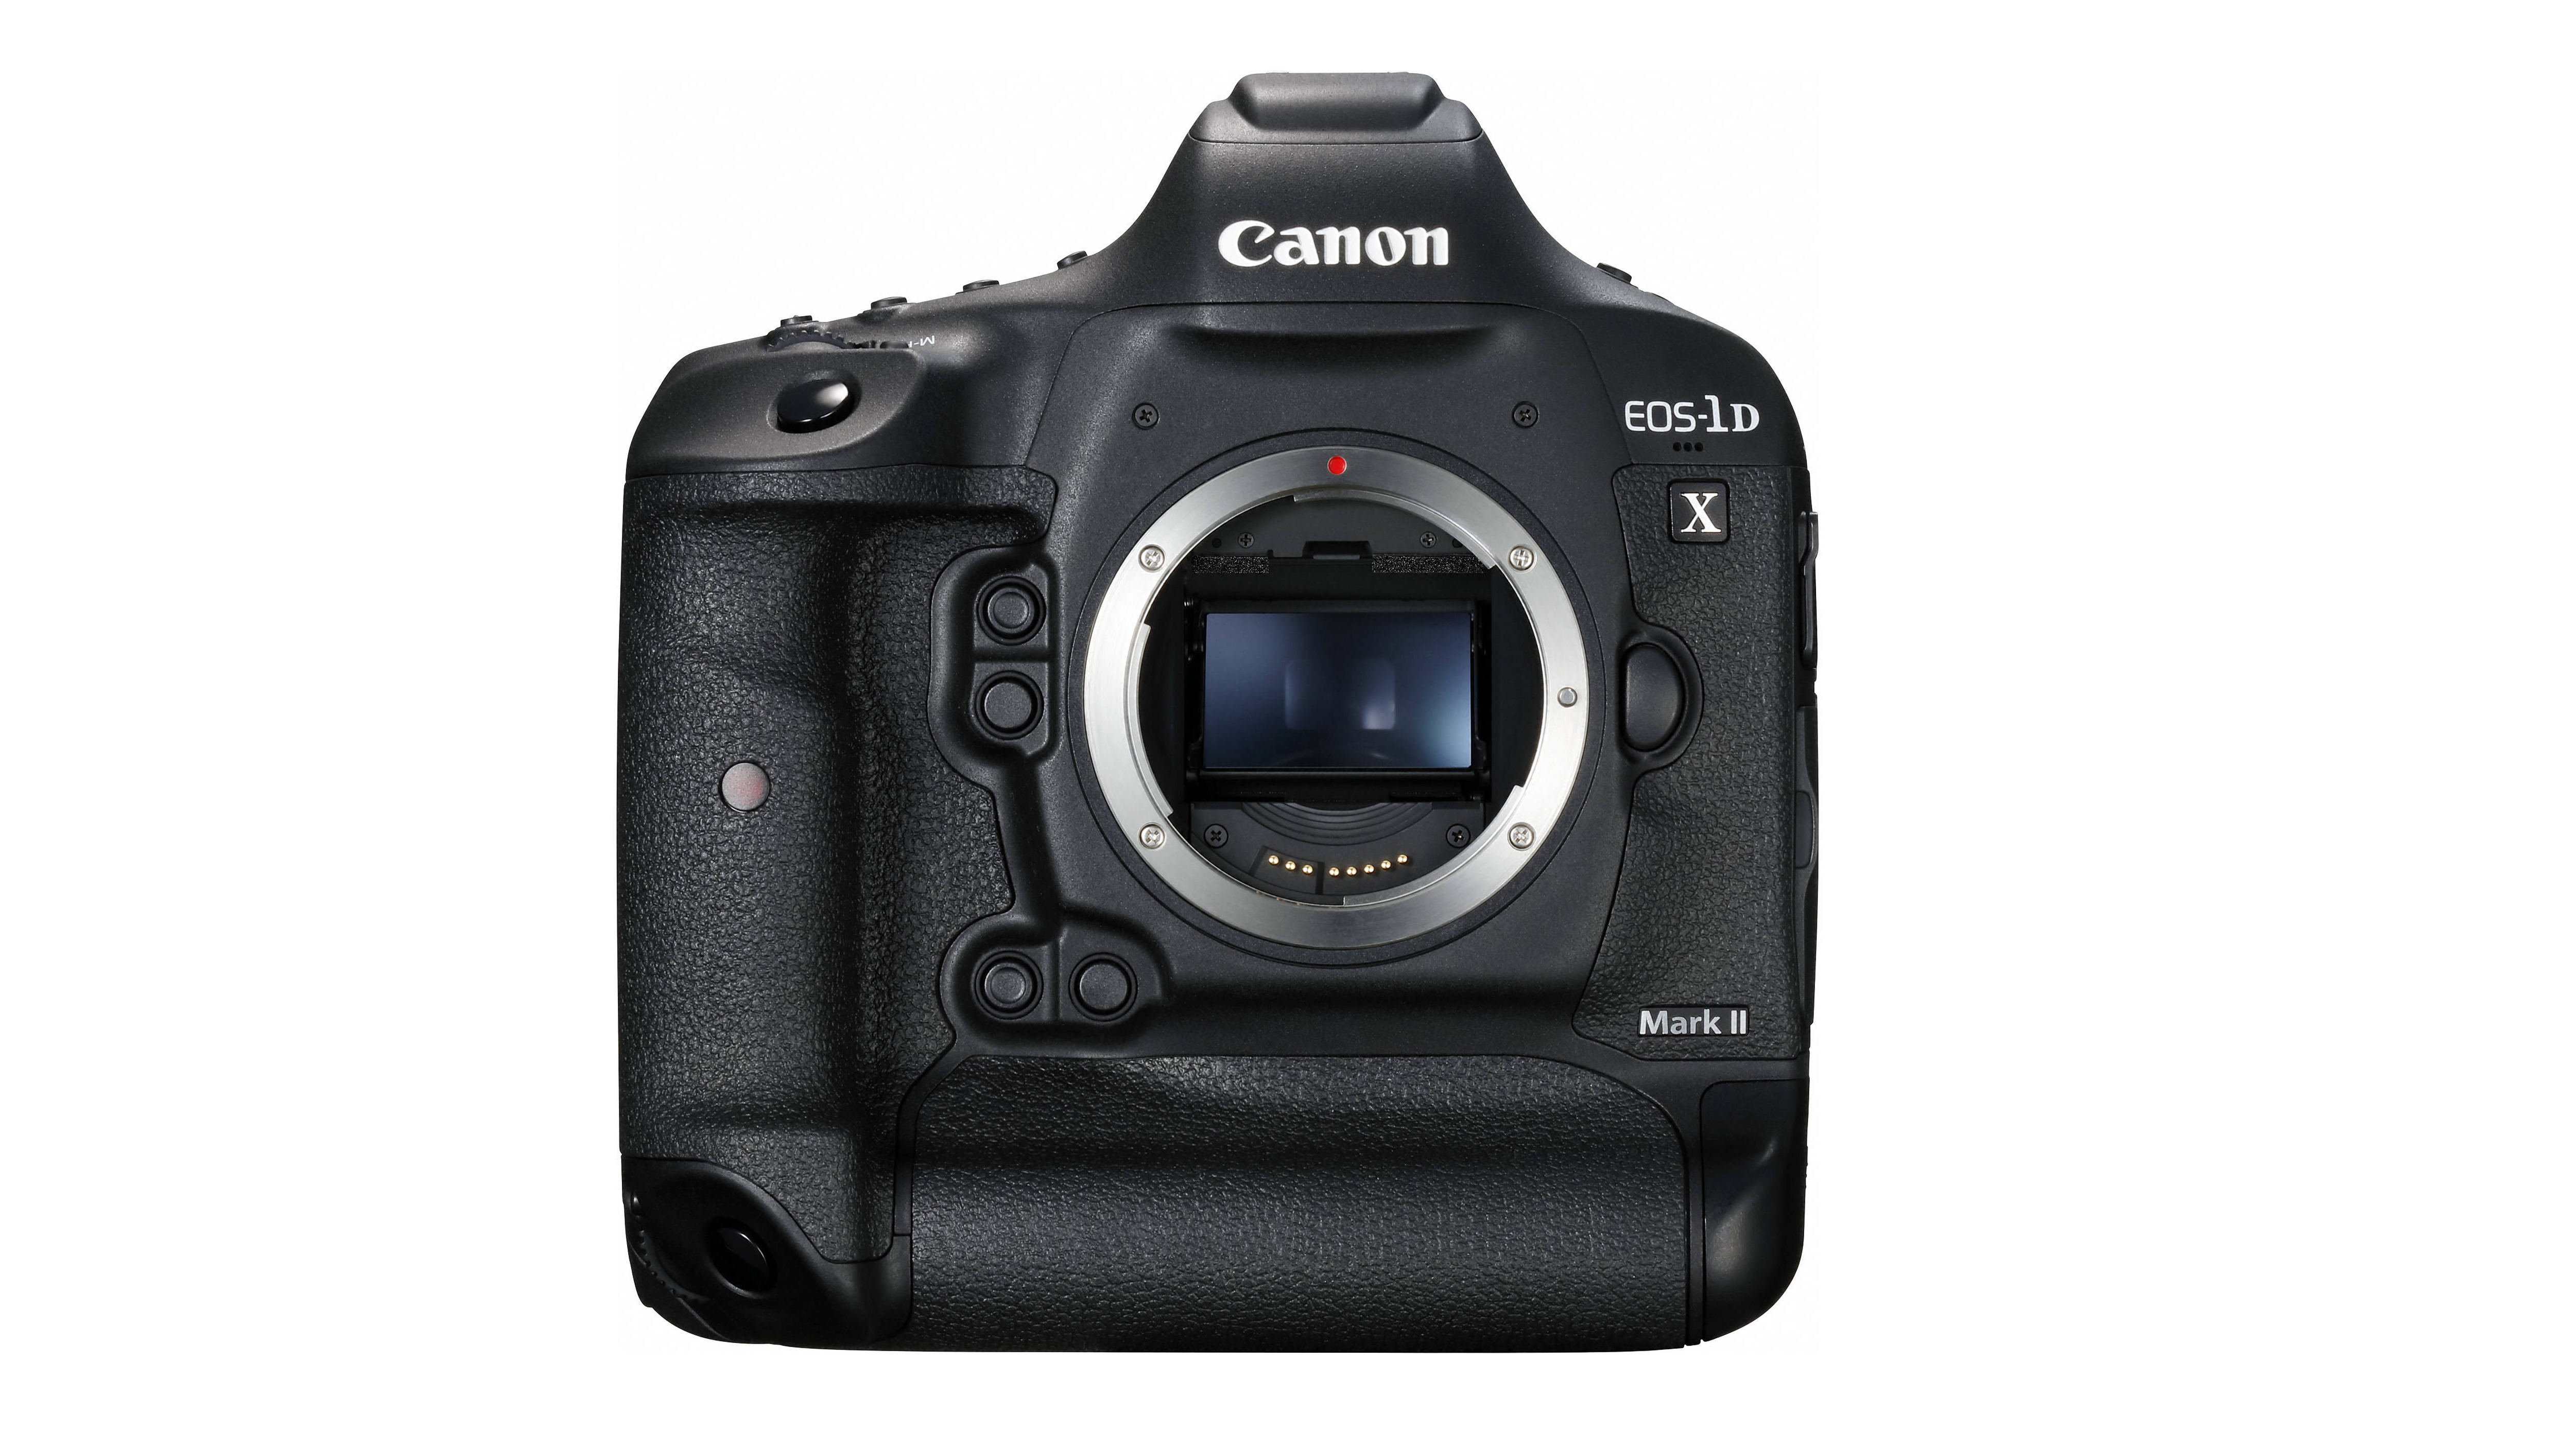 canon model numbers explained a guide to canon s odd dslr camera rh expertreviews co uk Canon Digital SLR Camera Pictures Taken with SLR Camera